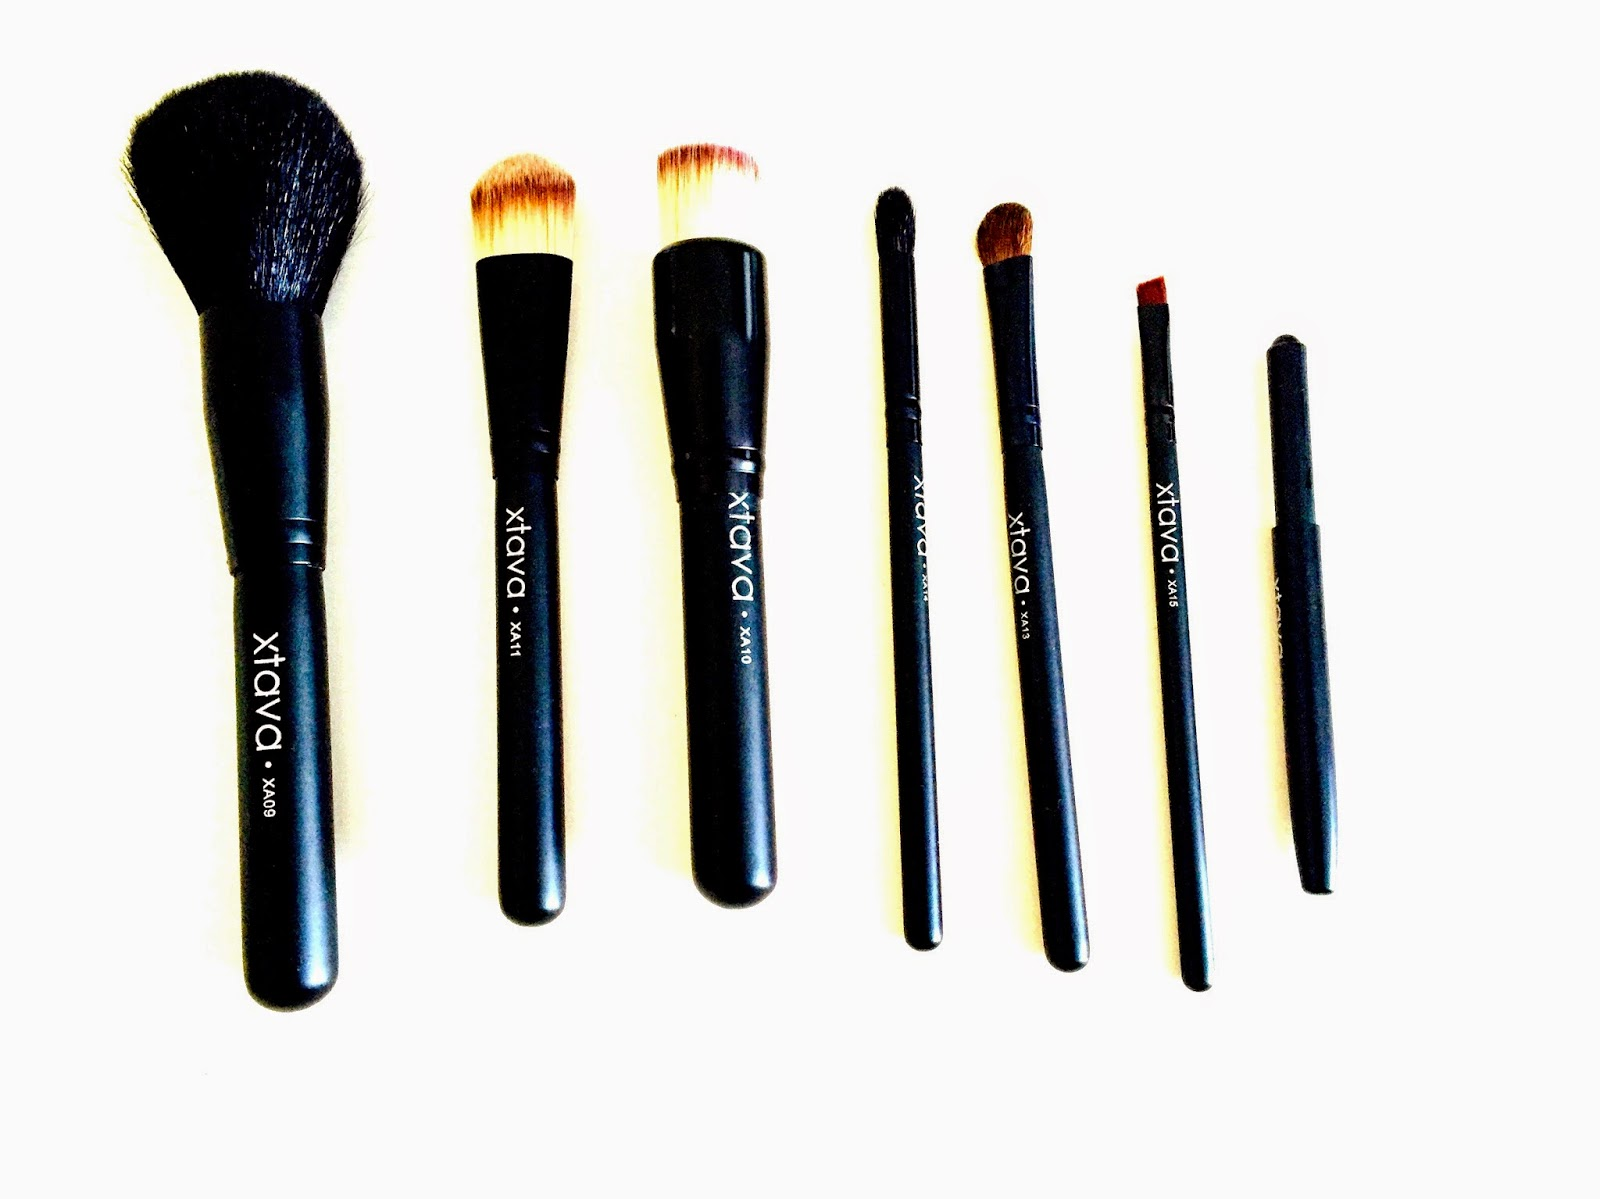 xtava brushes, make up brushes review, make up brushes, xtava brushes review, reviews, make up, mac make up, best make up brushes,